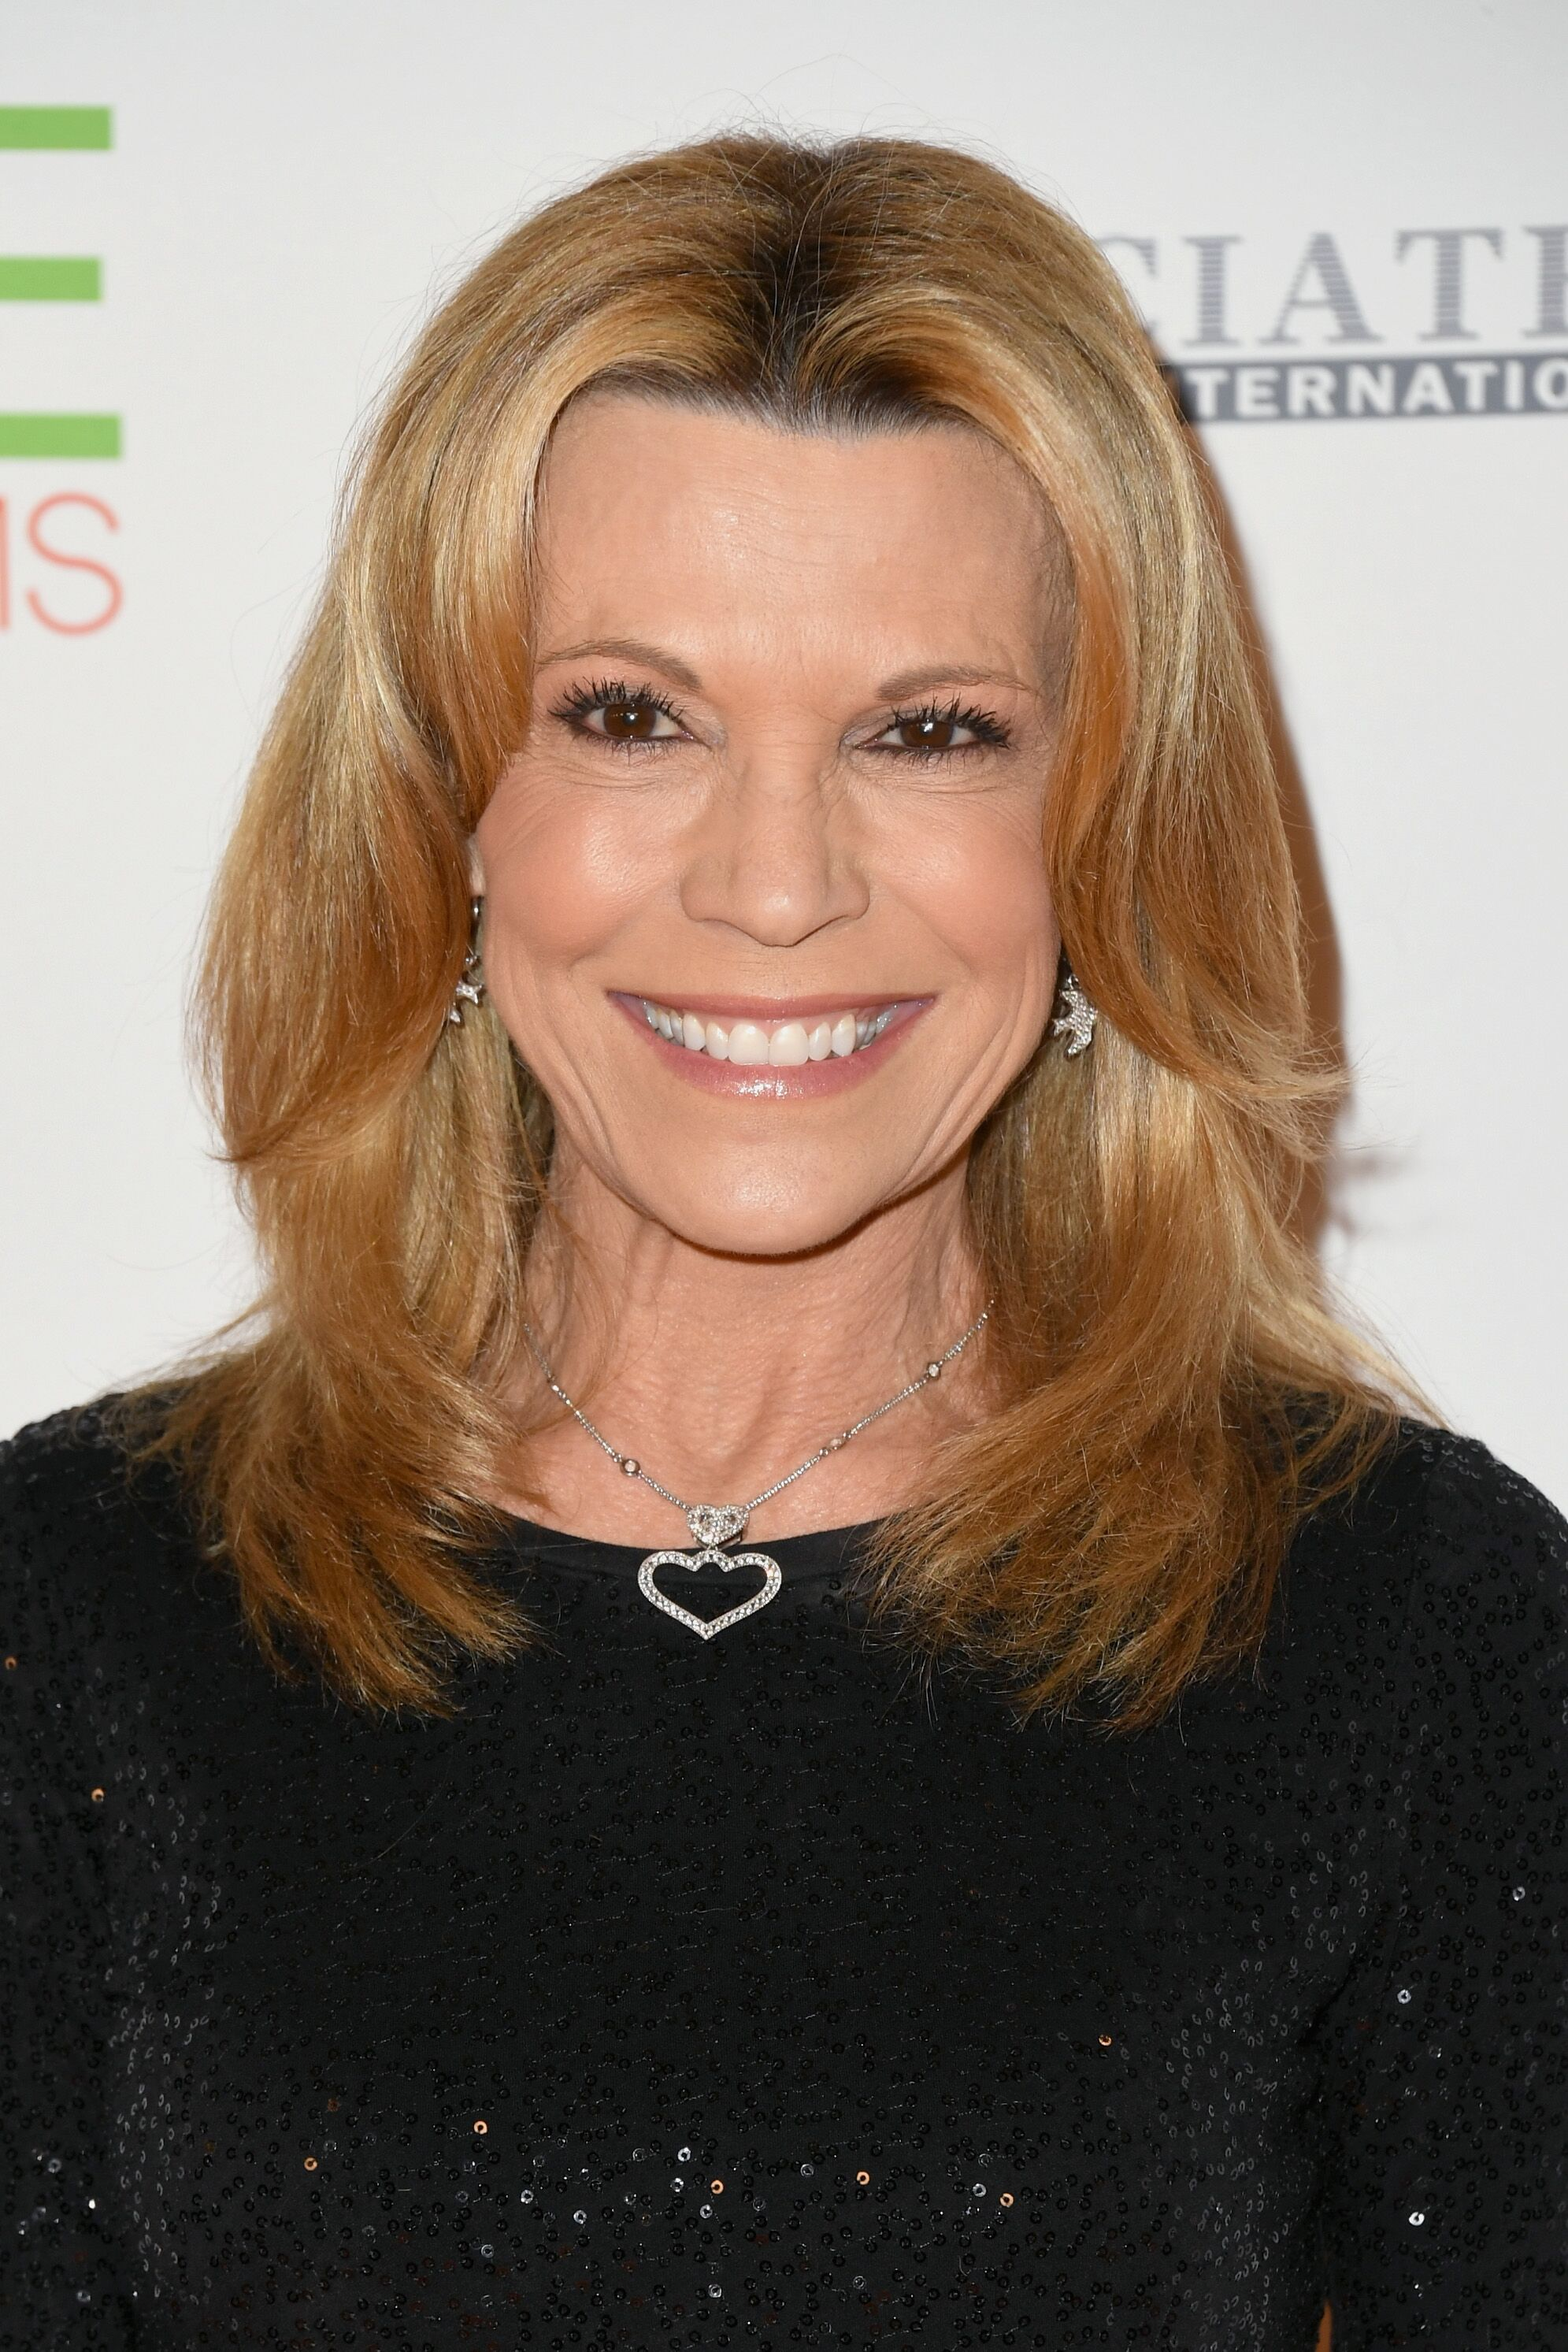 Vanna White attends the 25th Annual Race To Erase MS Gala. | Source: Getty Images